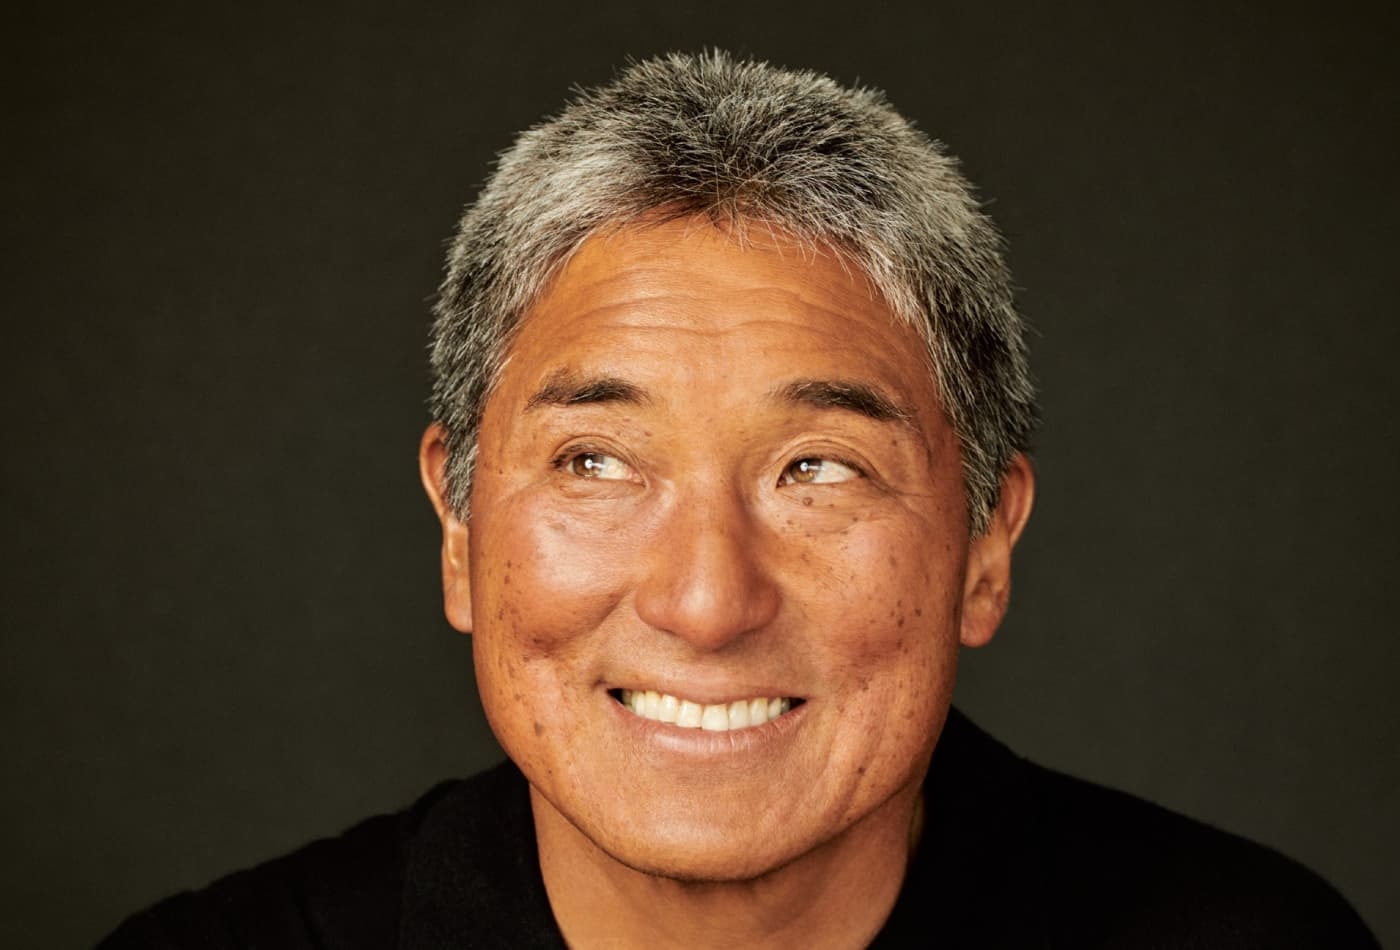 Guy Kawasaki: At Apple, 'you had to prove yourself every day, or Steve Jobs got rid of you'